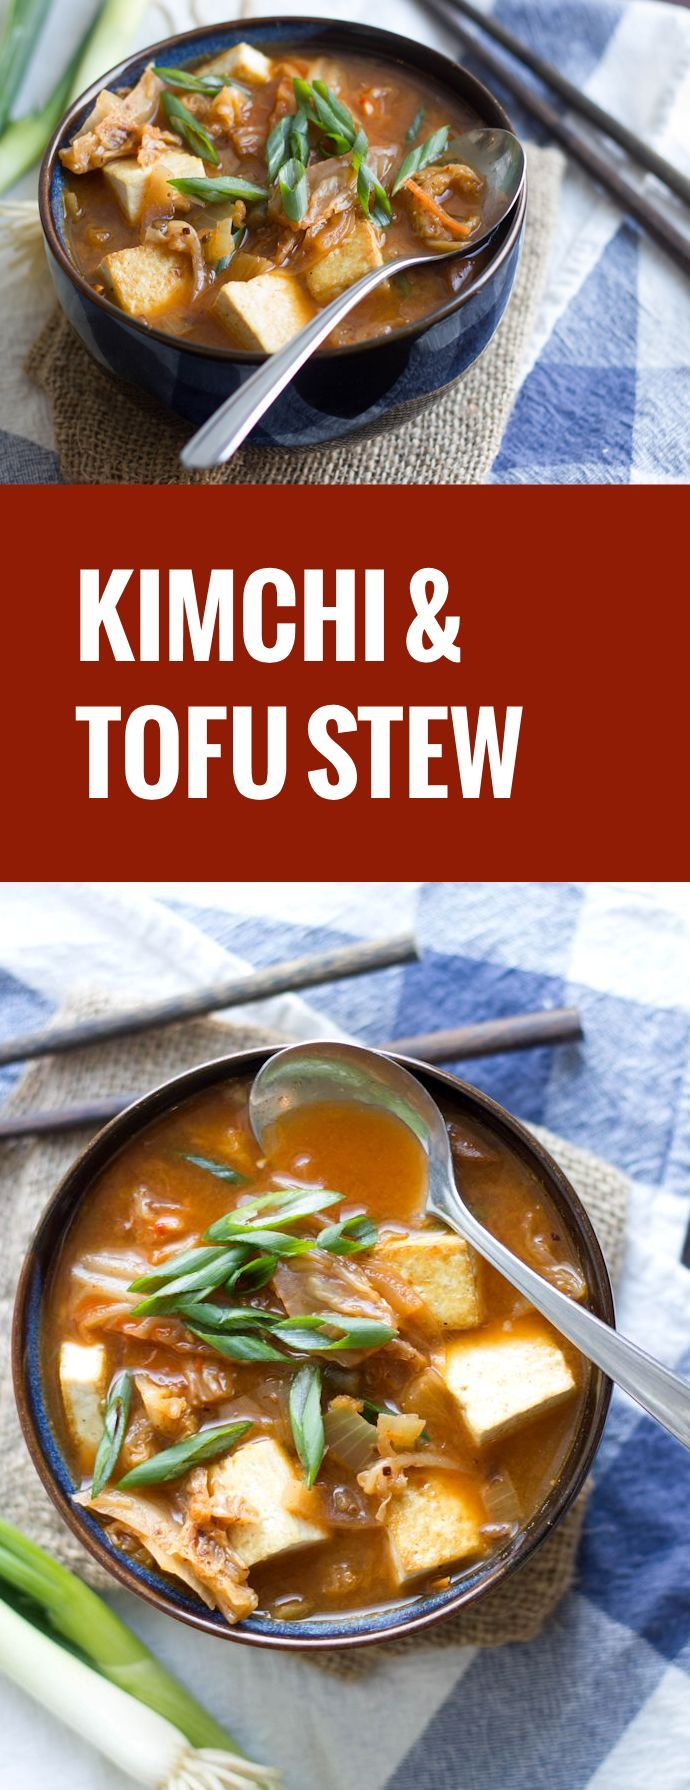 Warm up, with this spicy vegan kimchi stew that's made with with tender shiitake mushrooms and crispy pan-fried tofu.